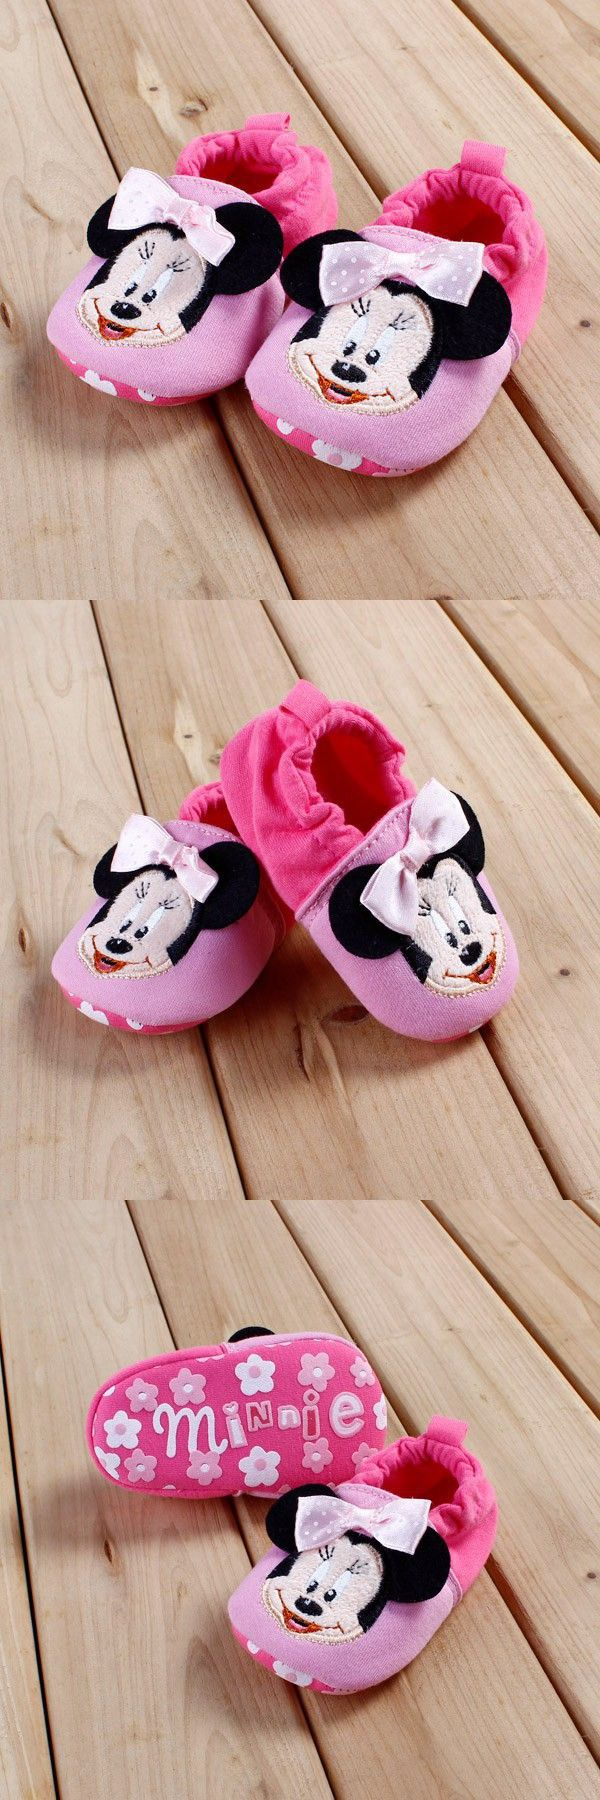 Lace-Up Brand Leather Baby shoes First Walkers boy/Girl Shoes toddler/Infant/Newborn shoes, antislip Baby footwear R1282